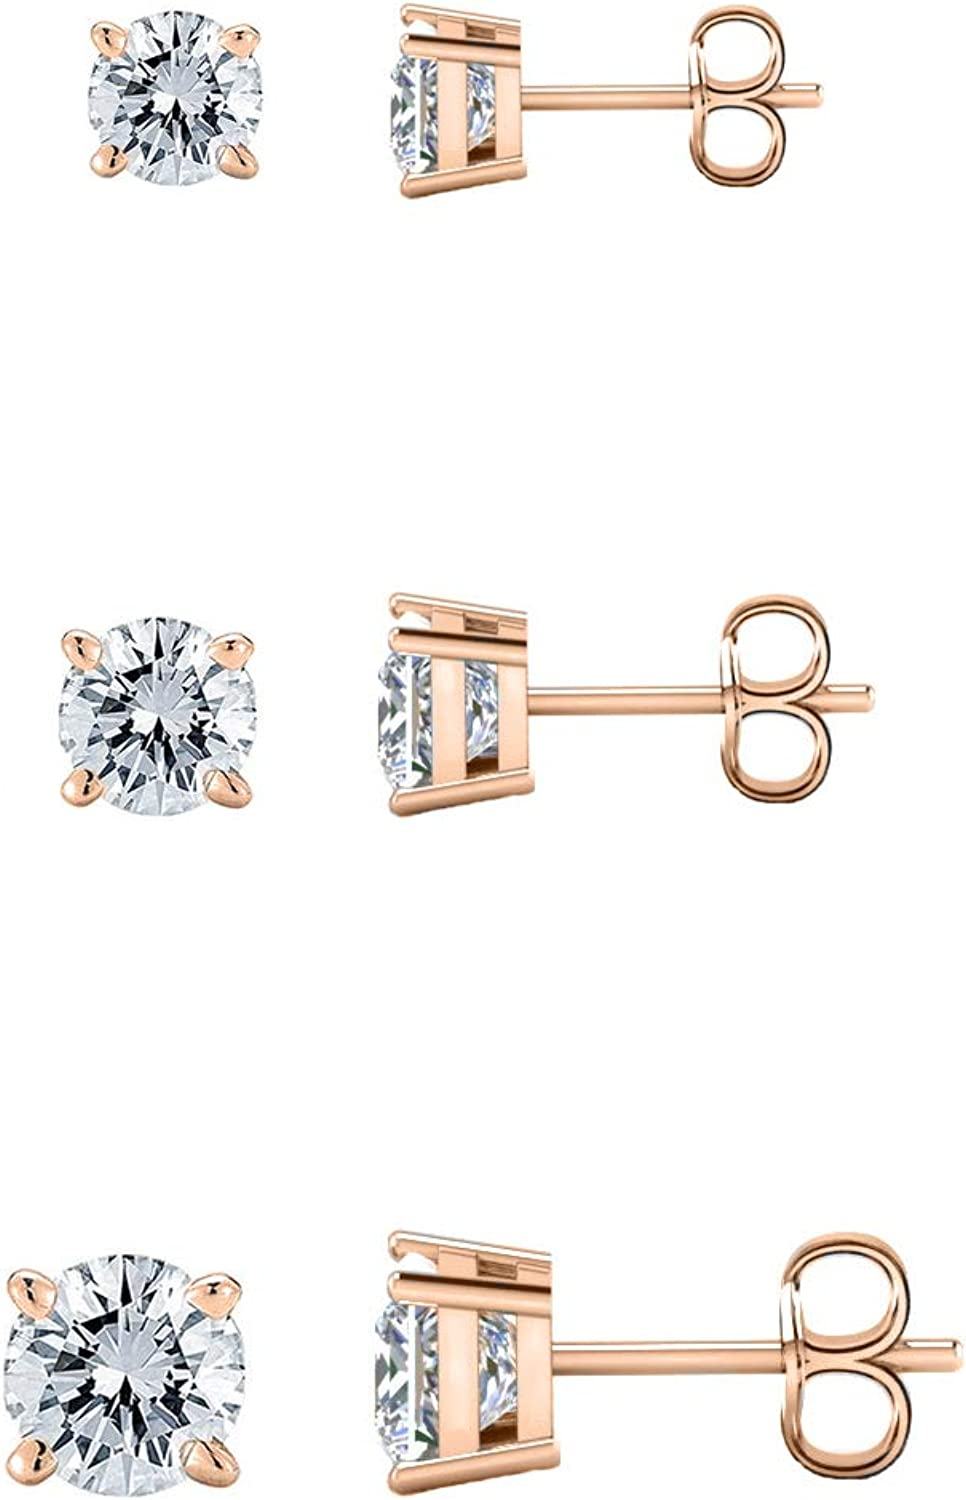 Savlano 3 Pair 14K Gold Plated Cubic Zirconia Round Cut Stud Earrings Comes In 4mm, 6mm & 8mm For Women, Girls & Men